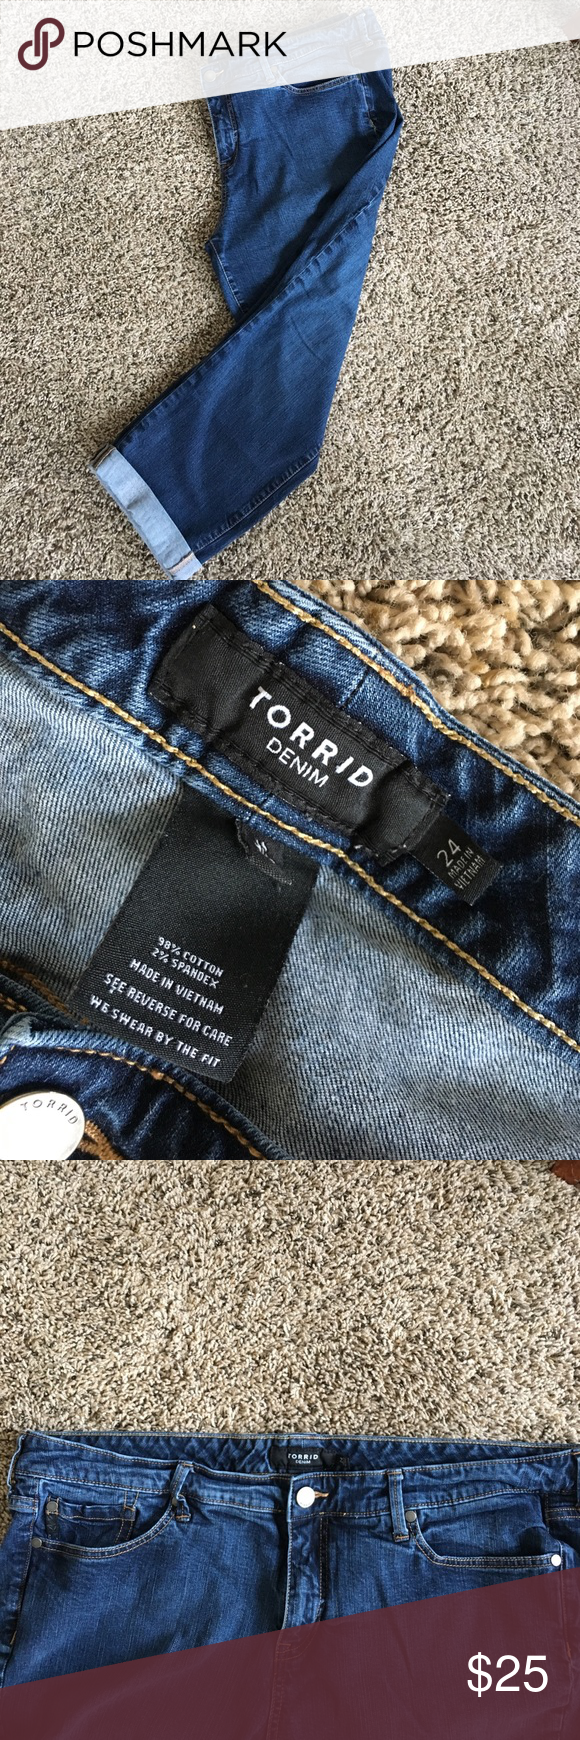 Torrid CROP Sz24 Excellent condition. Cuffed inseam 23 (came cuffed). 98% cotton 2% spandex for the perfect comfy fit. torrid Pants Ankle & Cropped